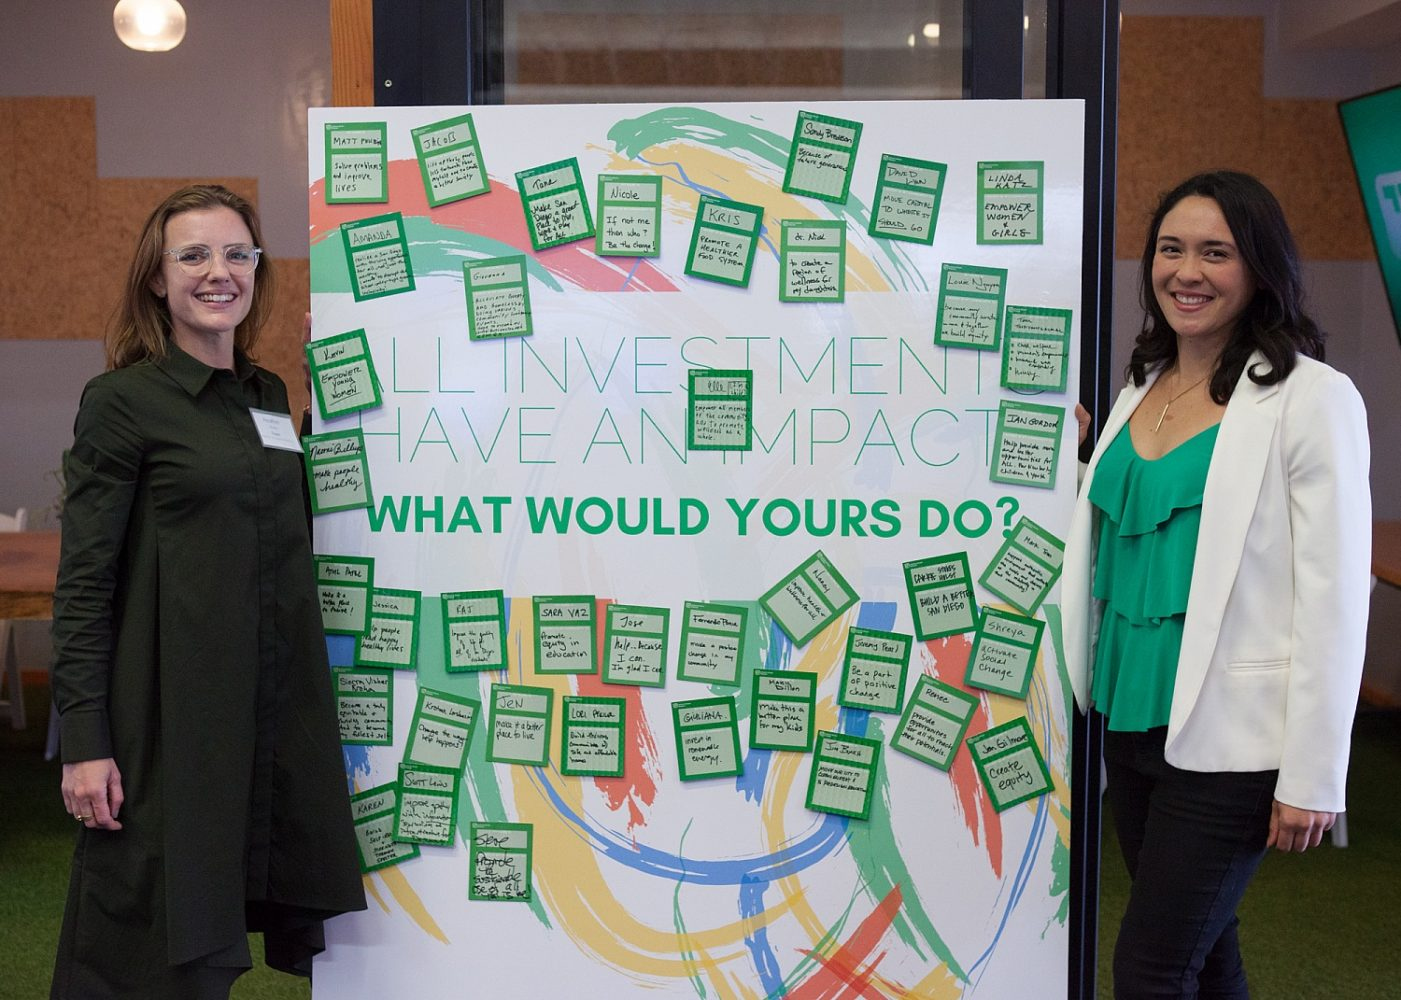 Heather Marie Burke & Lauren Grattan of Mission Driven Finance: All investments have an impact